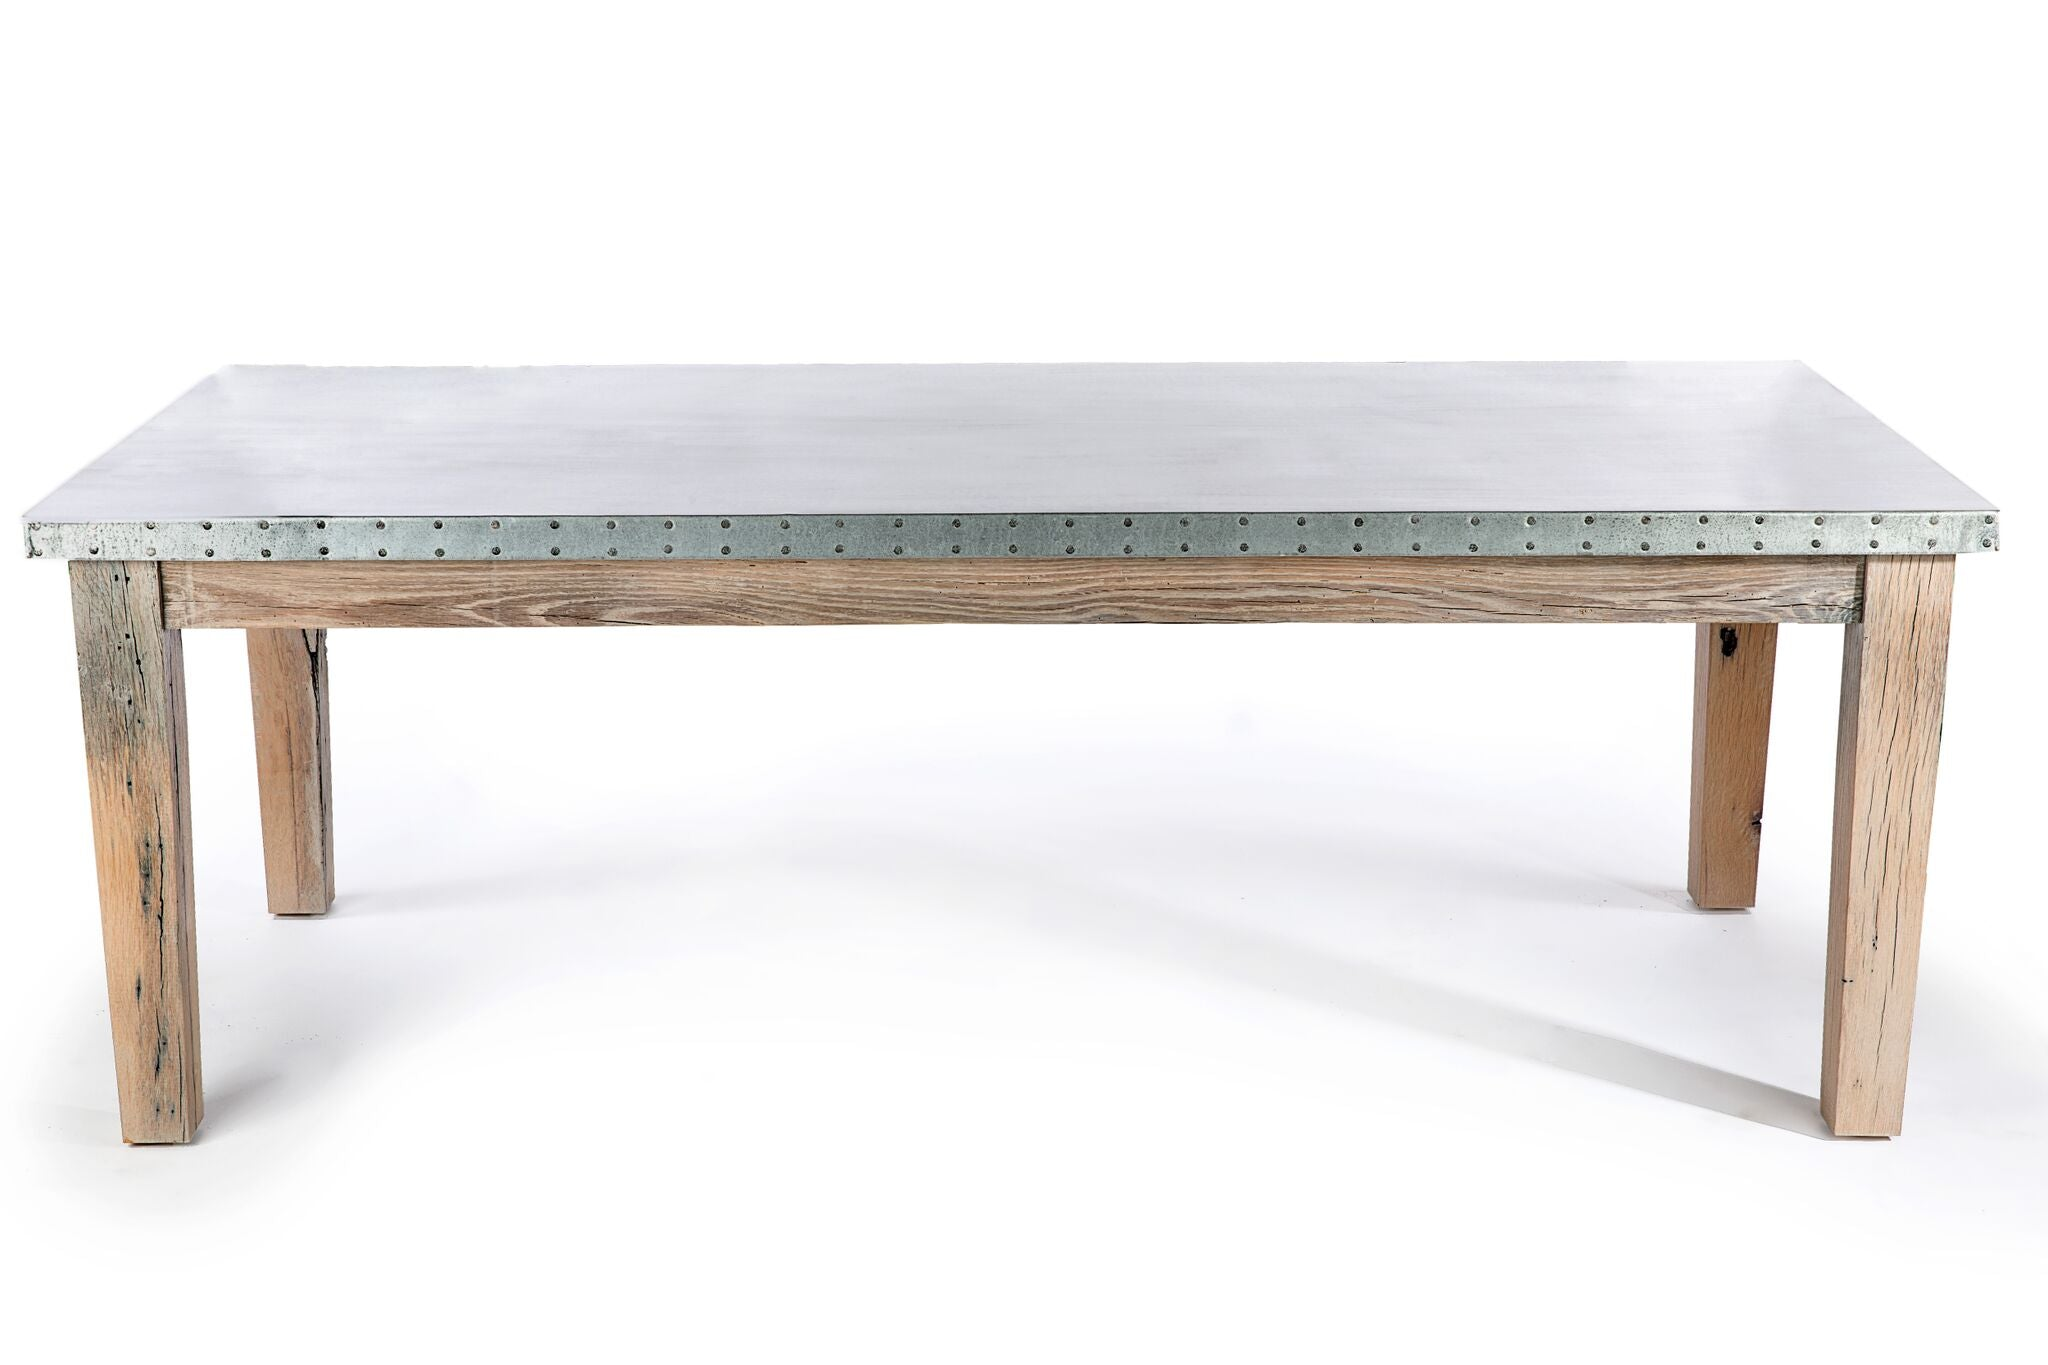 "Zinc Rectangular Table | Cambridge Table | CLASSIC | Natural Ash | CUSTOM SIZE L 60 W 37 H 30 | 1.5"" Standard